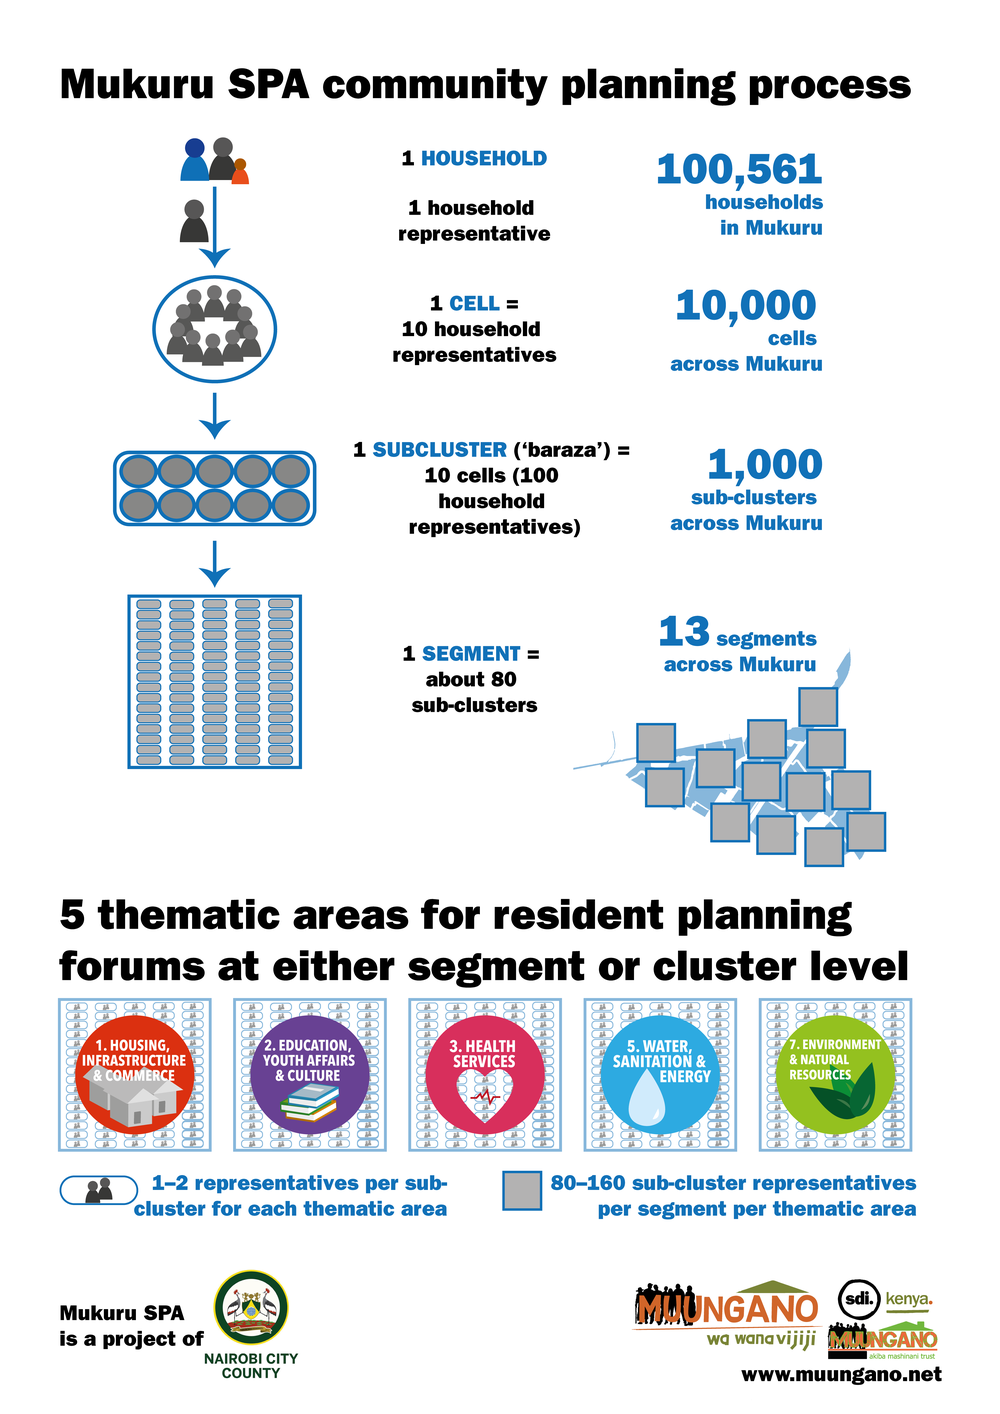 The community consultation process (click to expand)